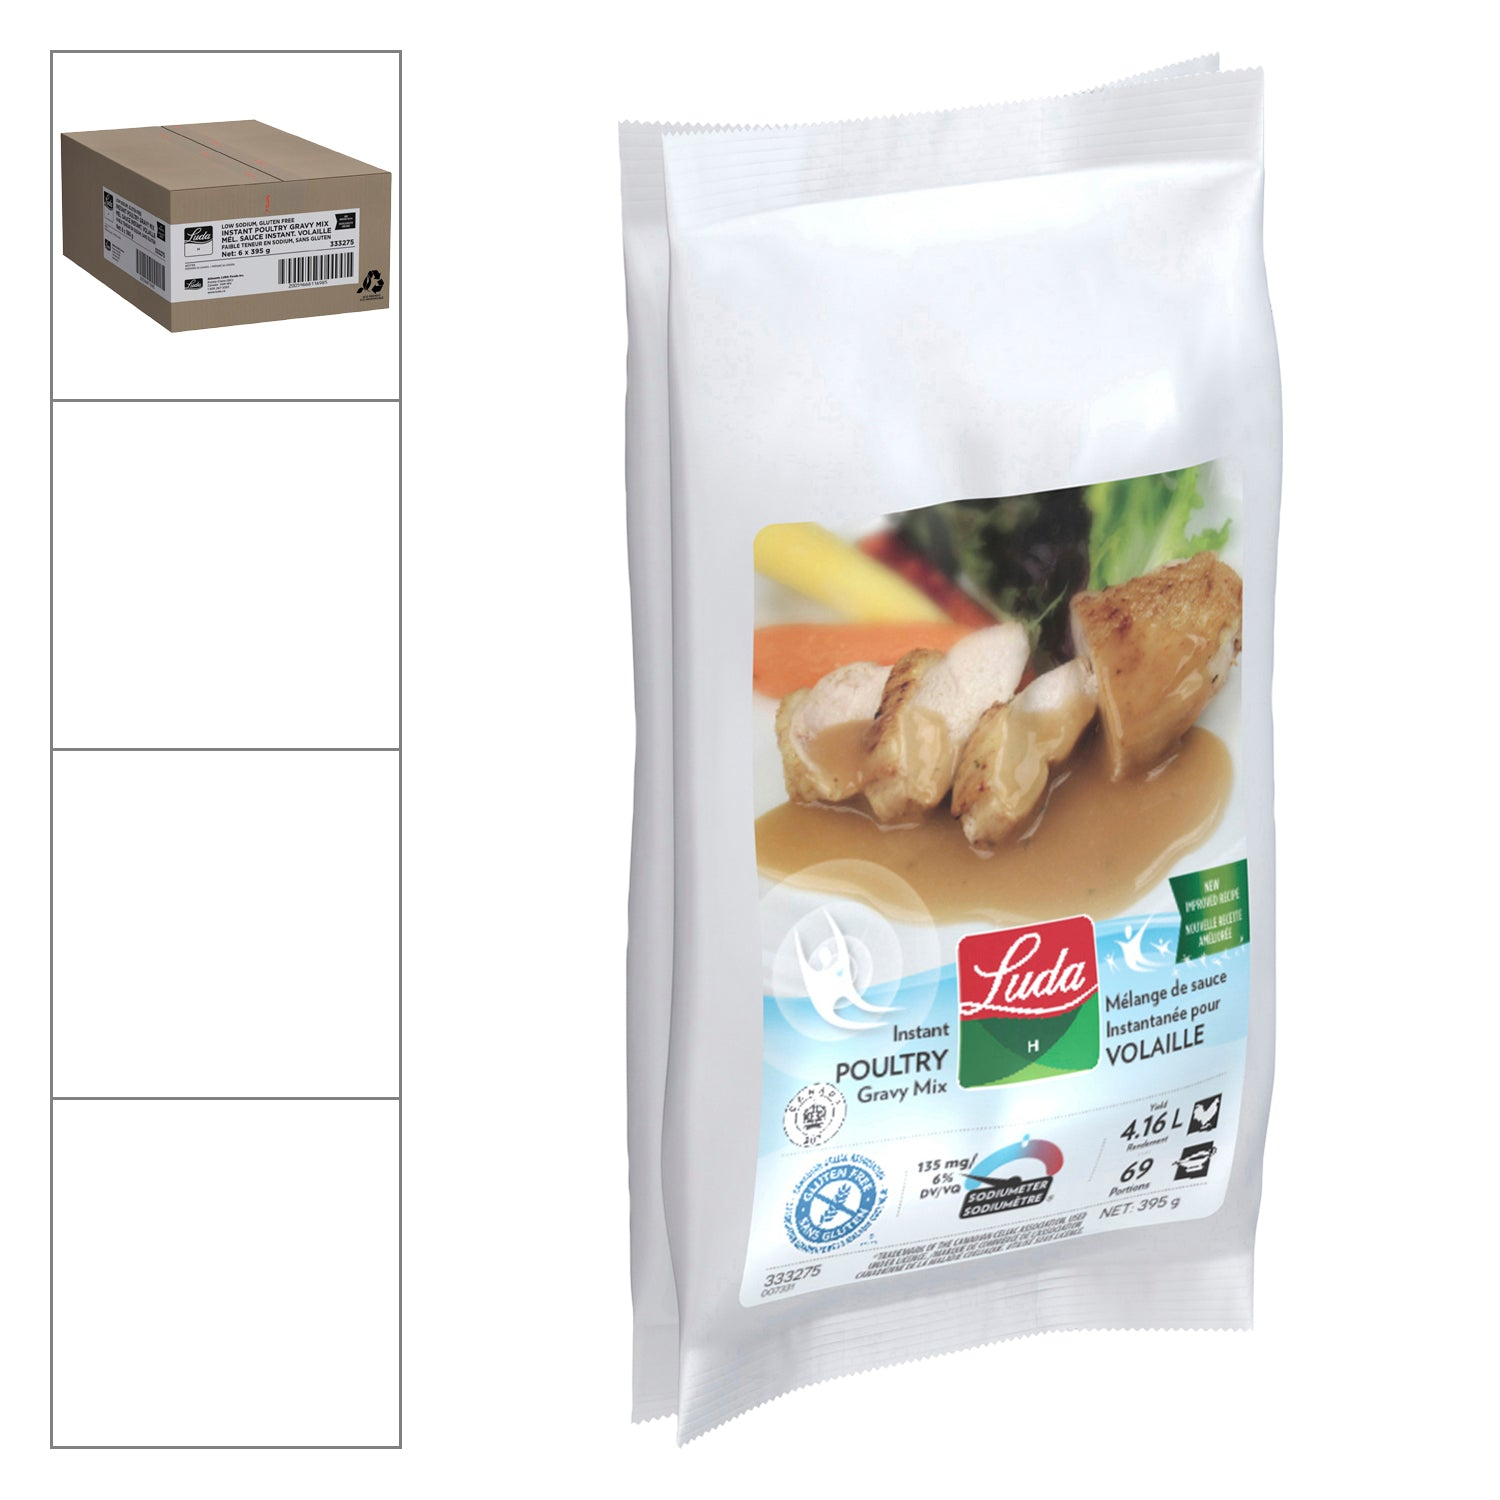 LUDA Low Sodium Instant Poultry Gravy Mix 395 g Gluten Free - 6 Pack [$8.33/pouch]